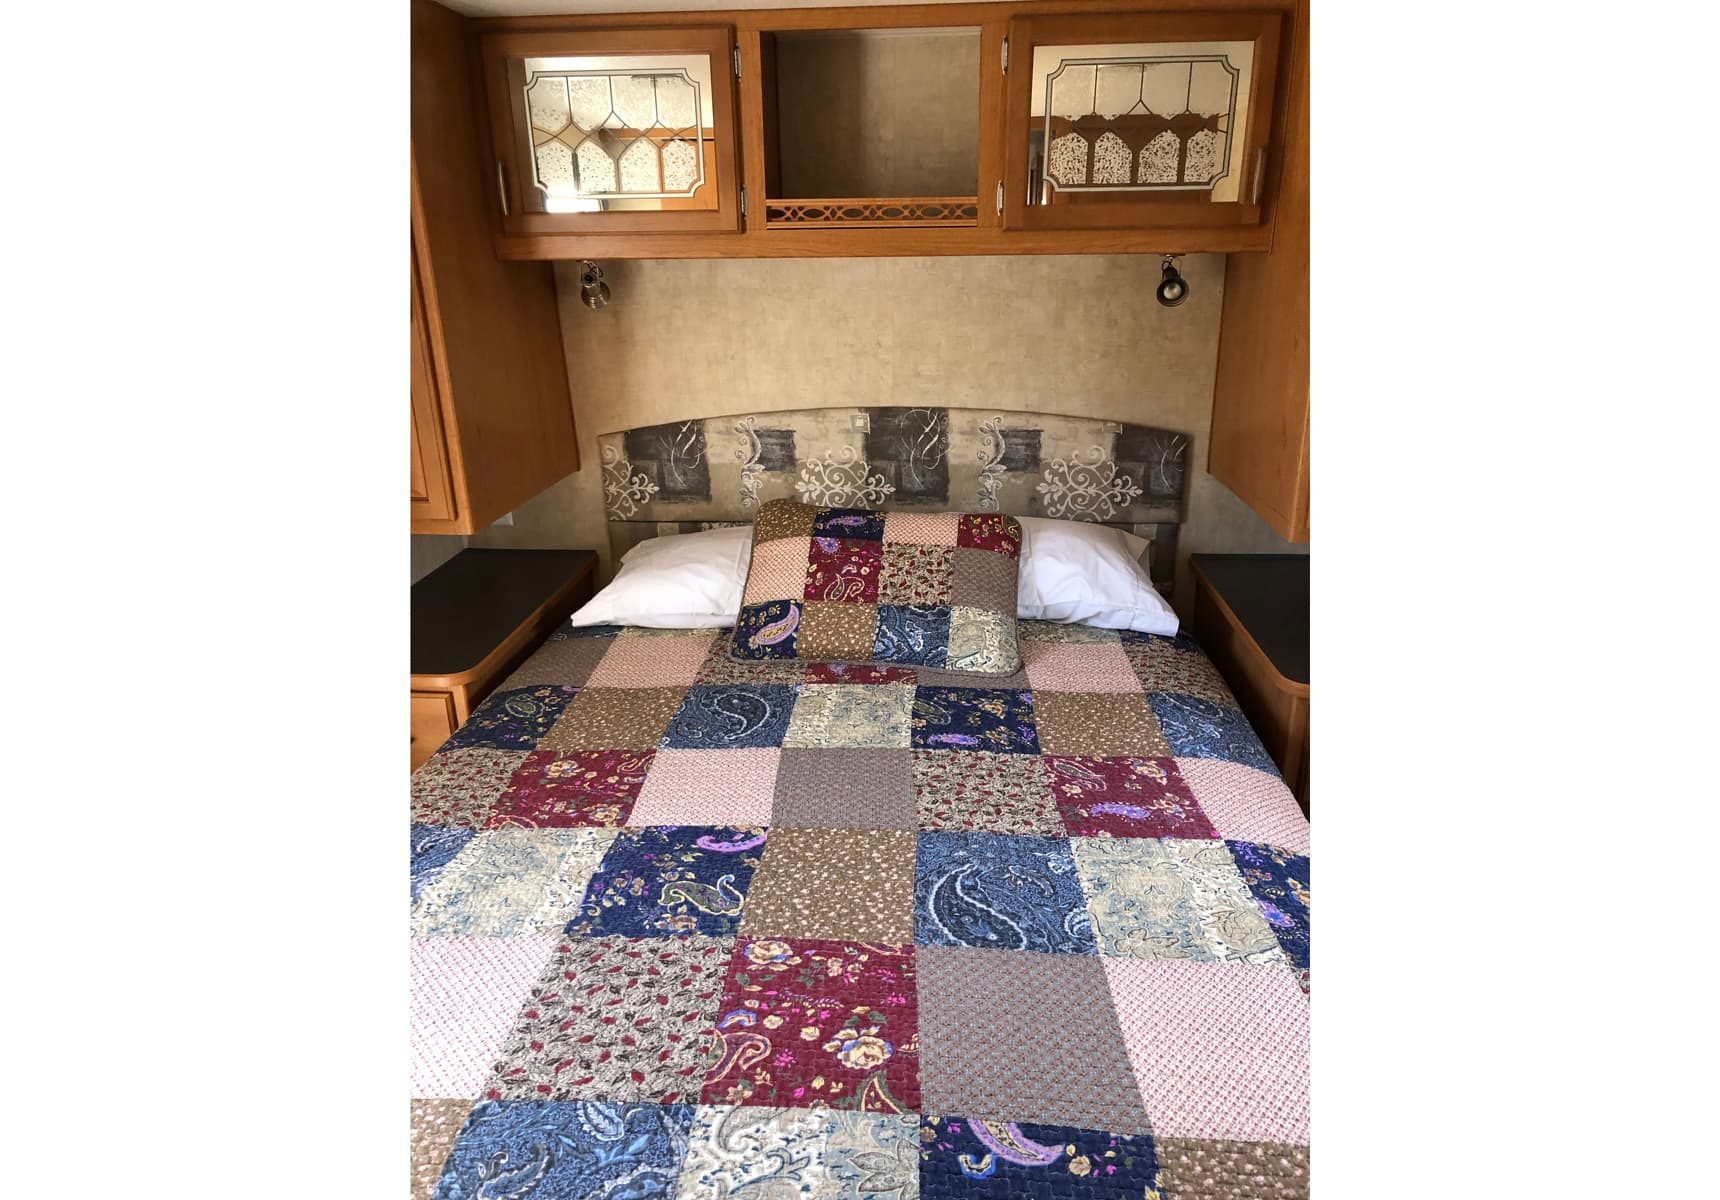 Queen bed with quilt and a cabinet with reading lamps